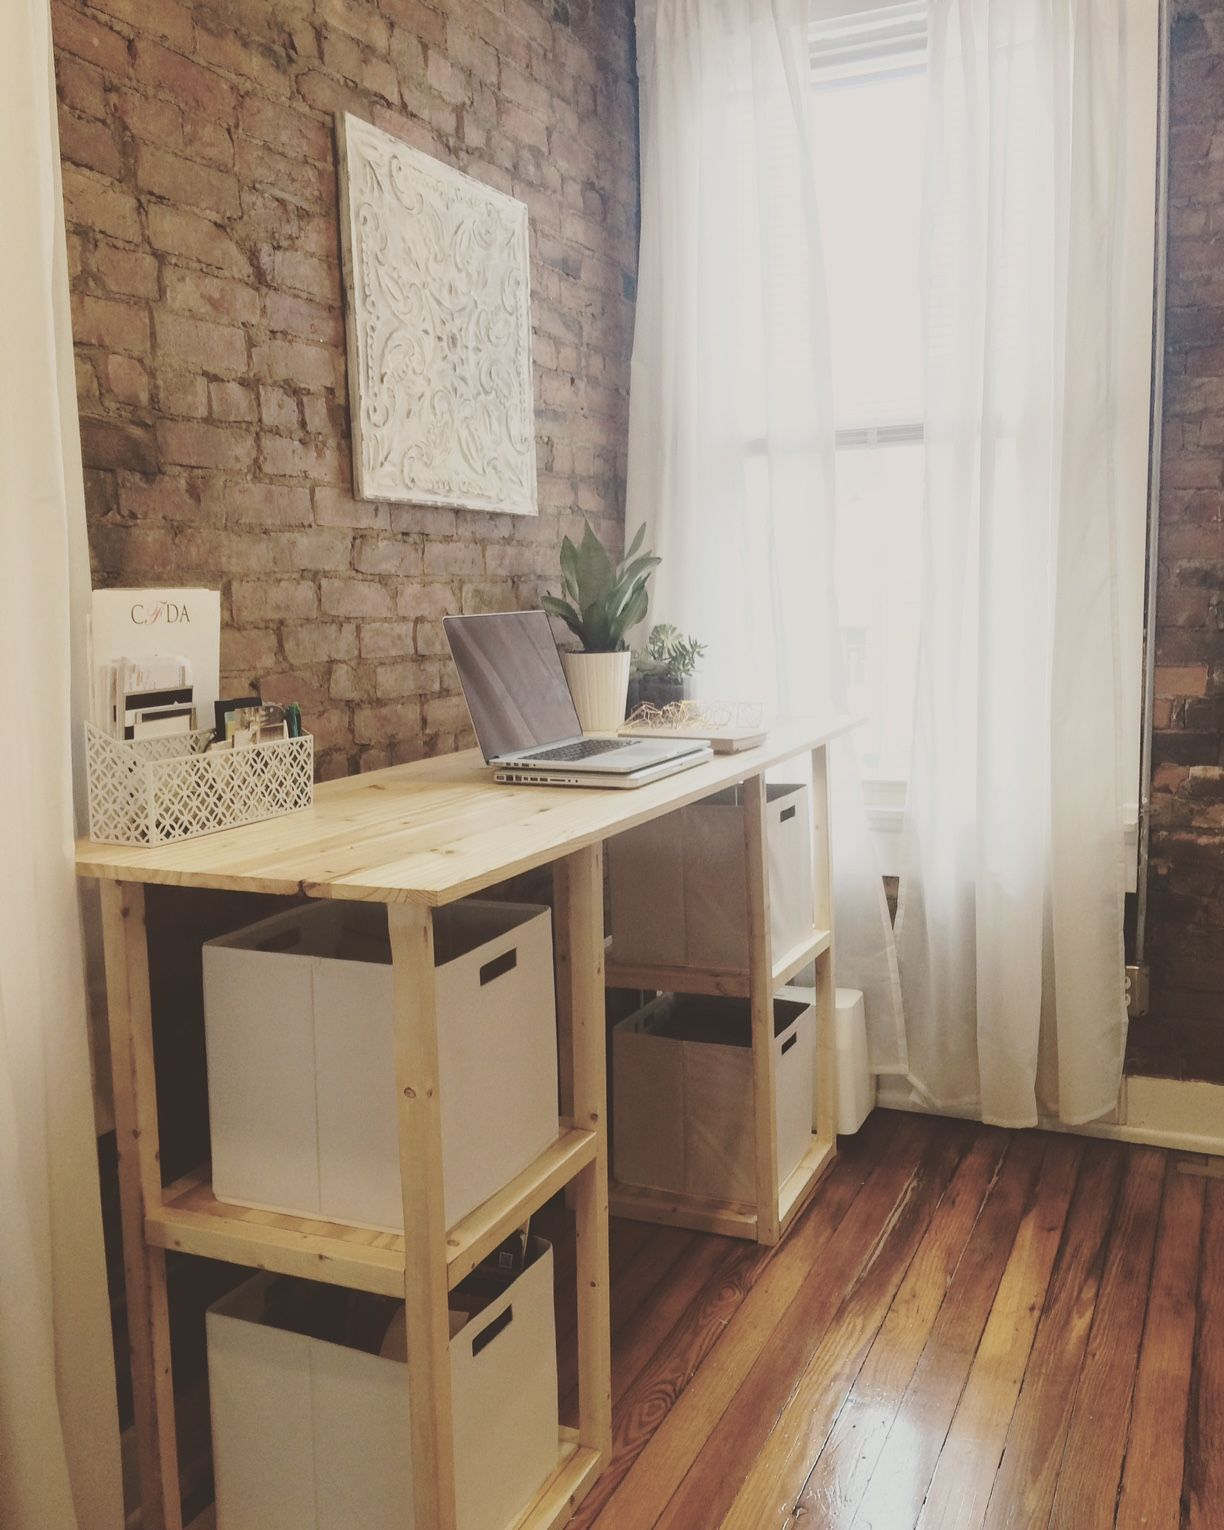 Do it yourself office desk diy do it yourself office desk s do it yourself office desk standing parson tower desk diy projects do it yourself solutioingenieria Gallery